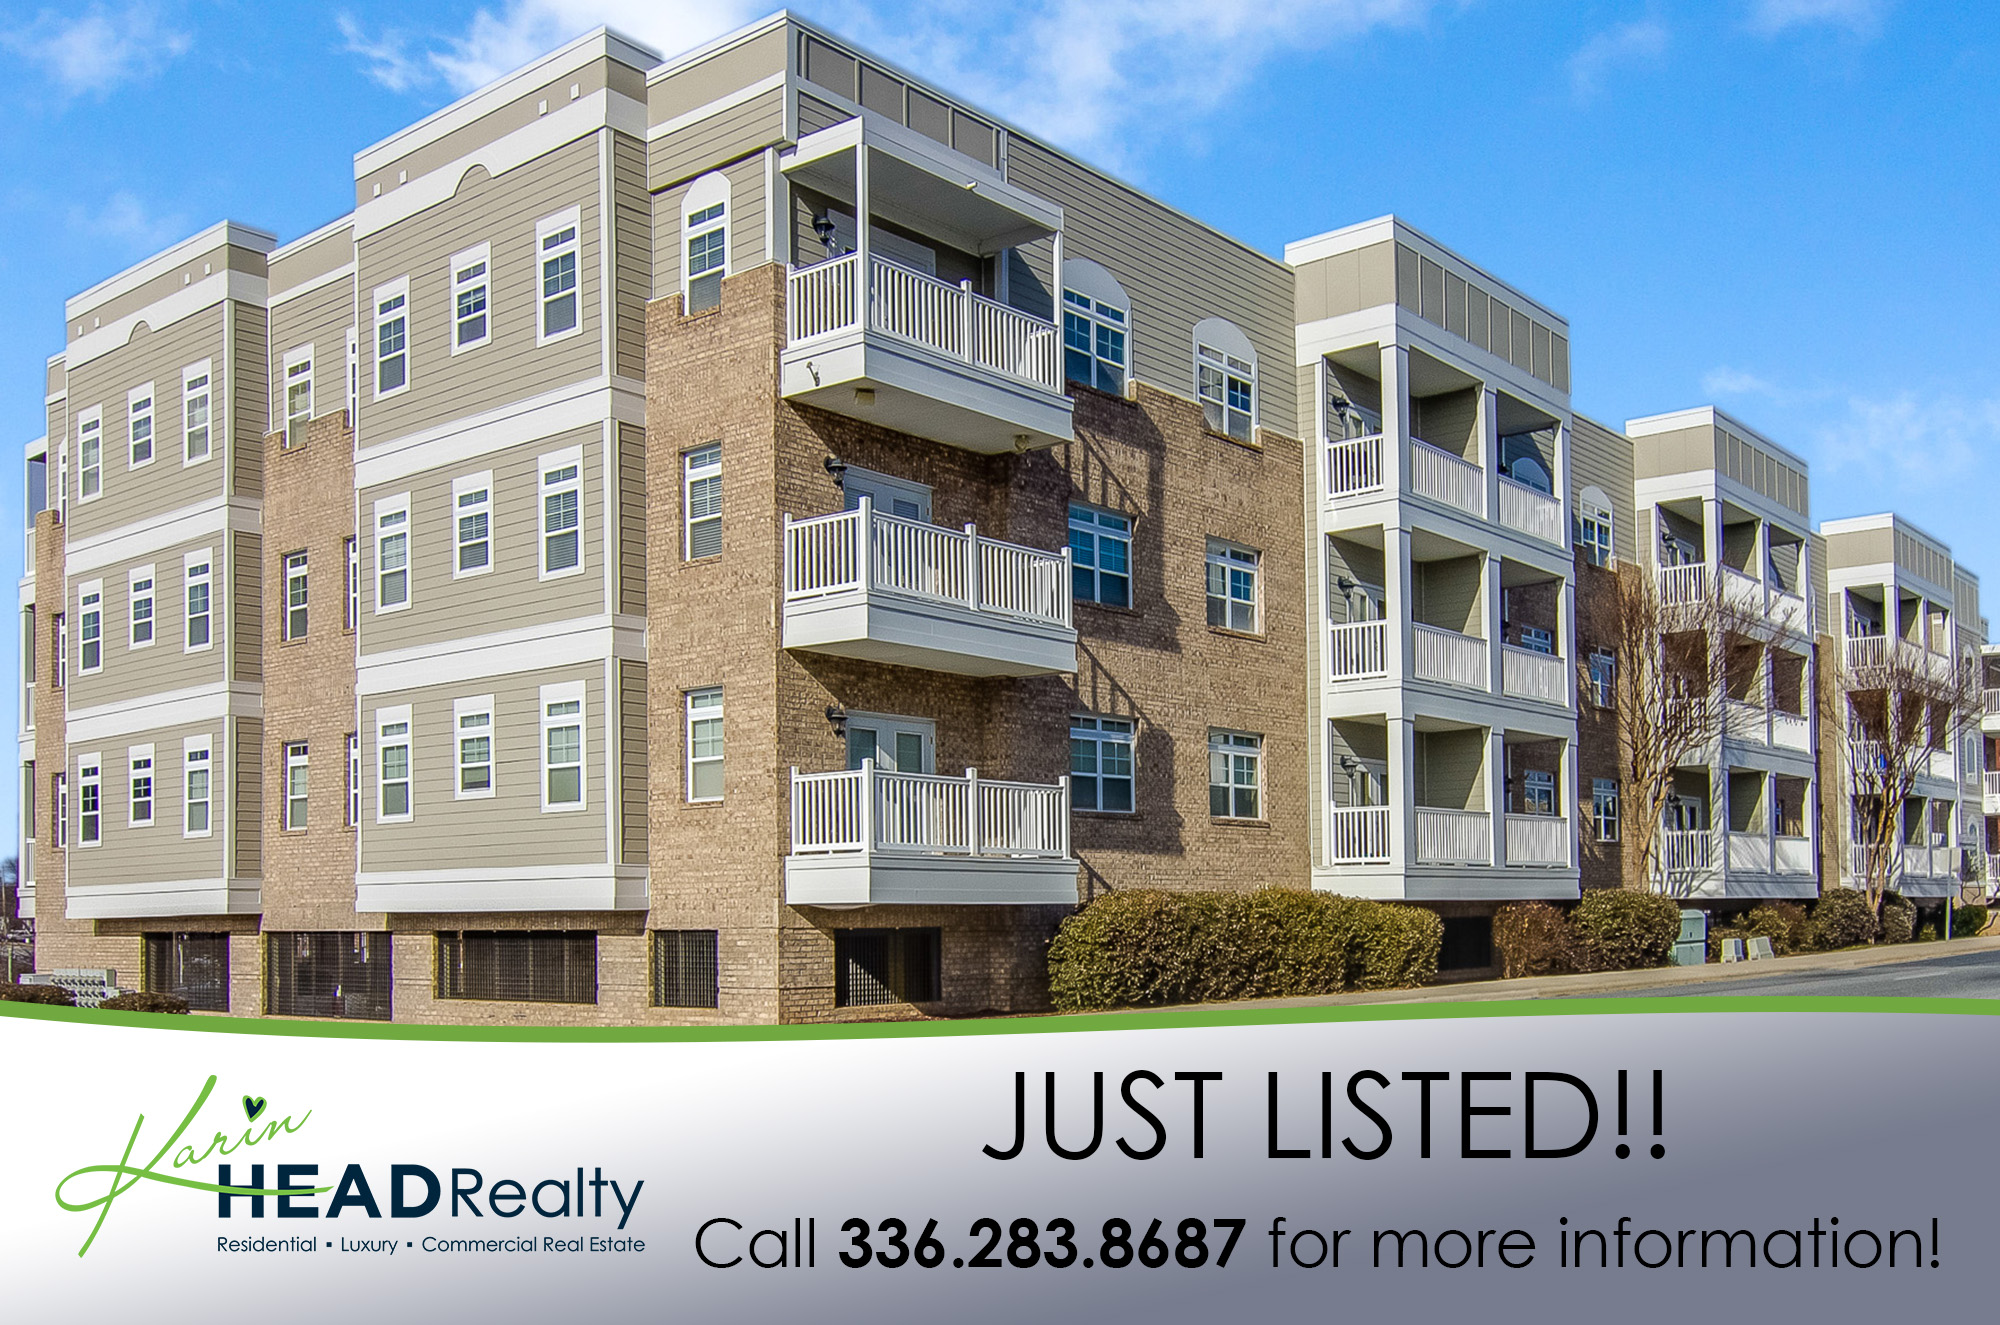 605 W Market St_Just Listed.jpg